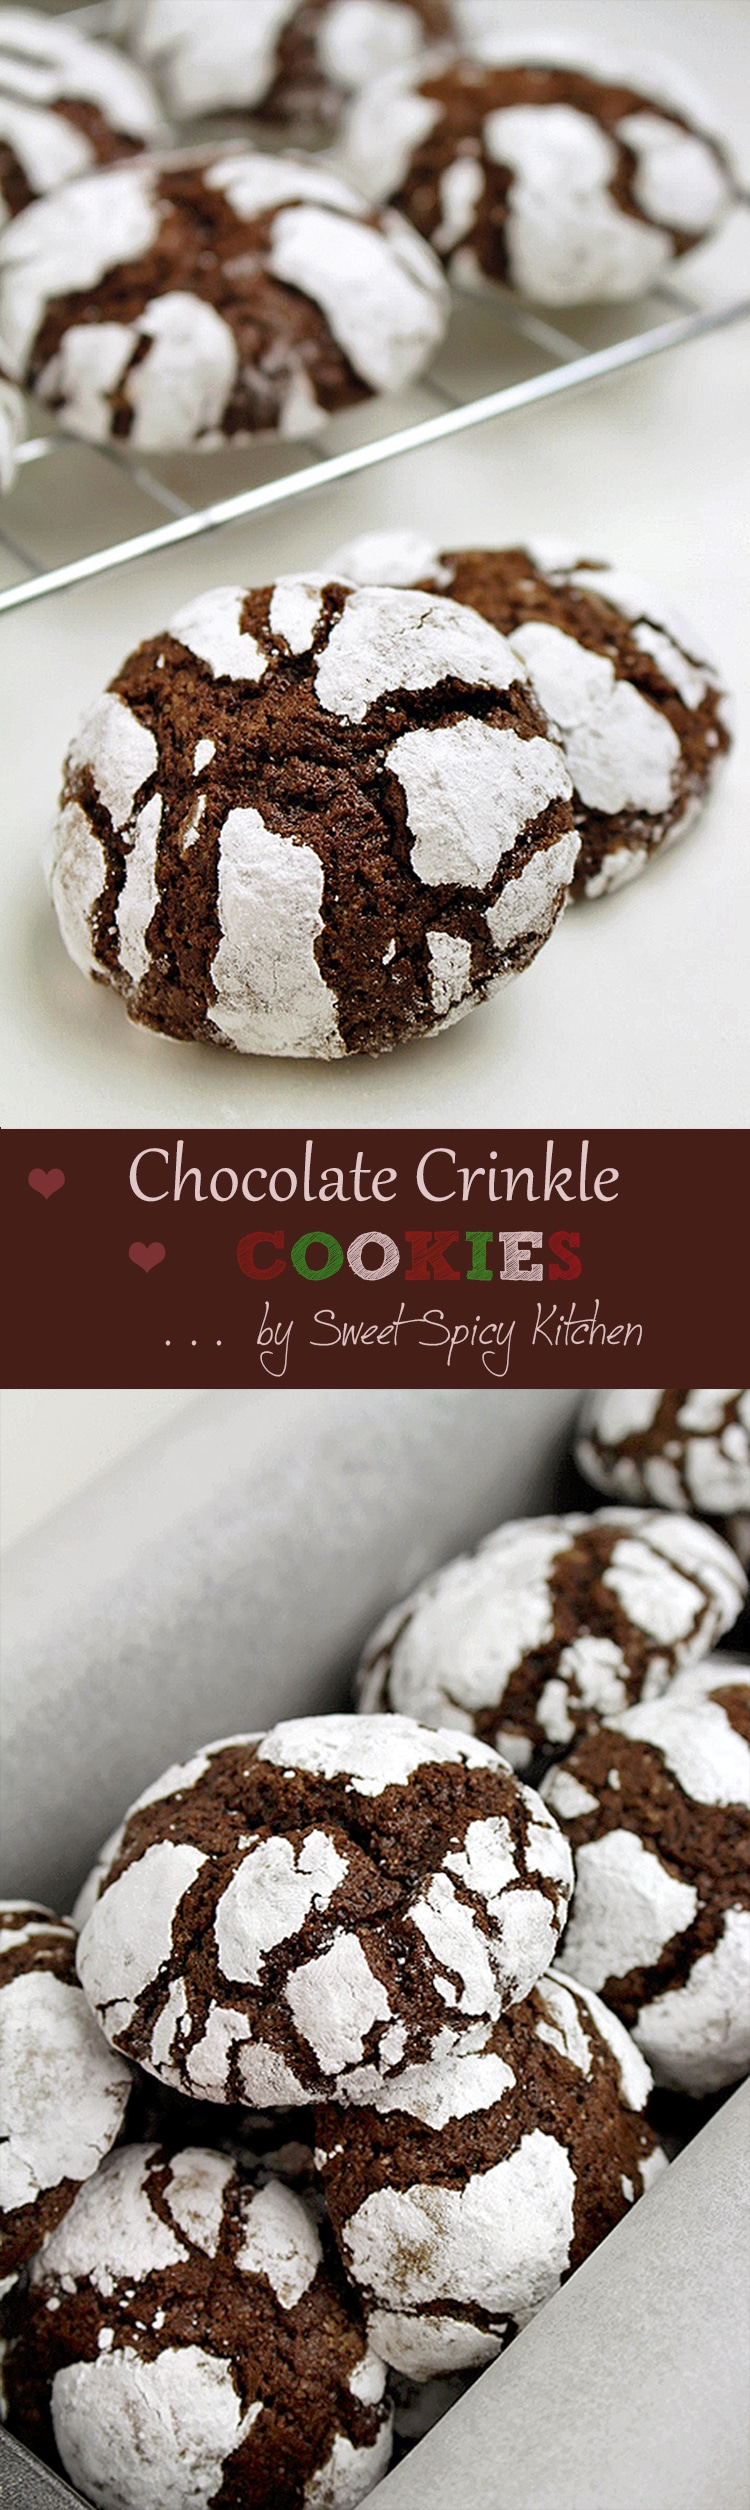 Christmas Chocolate Crinkle Cookies - Sweet Spicy Kitchen